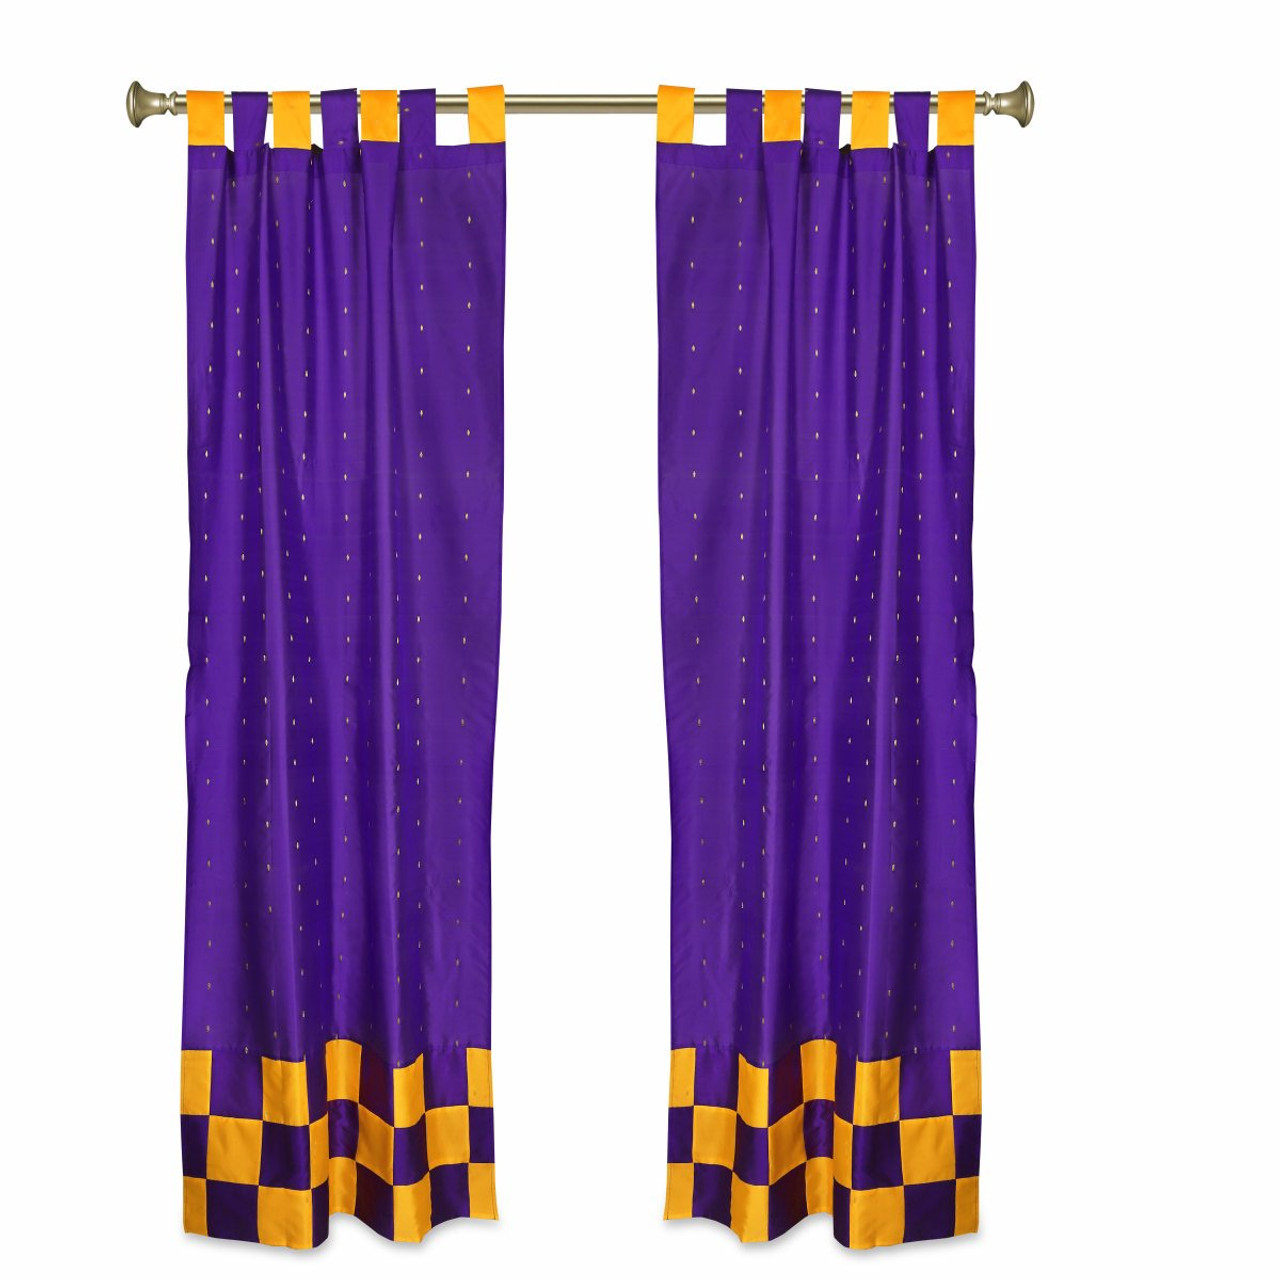 2 eclectic purple indian yellow check sari curtains tab top drapes